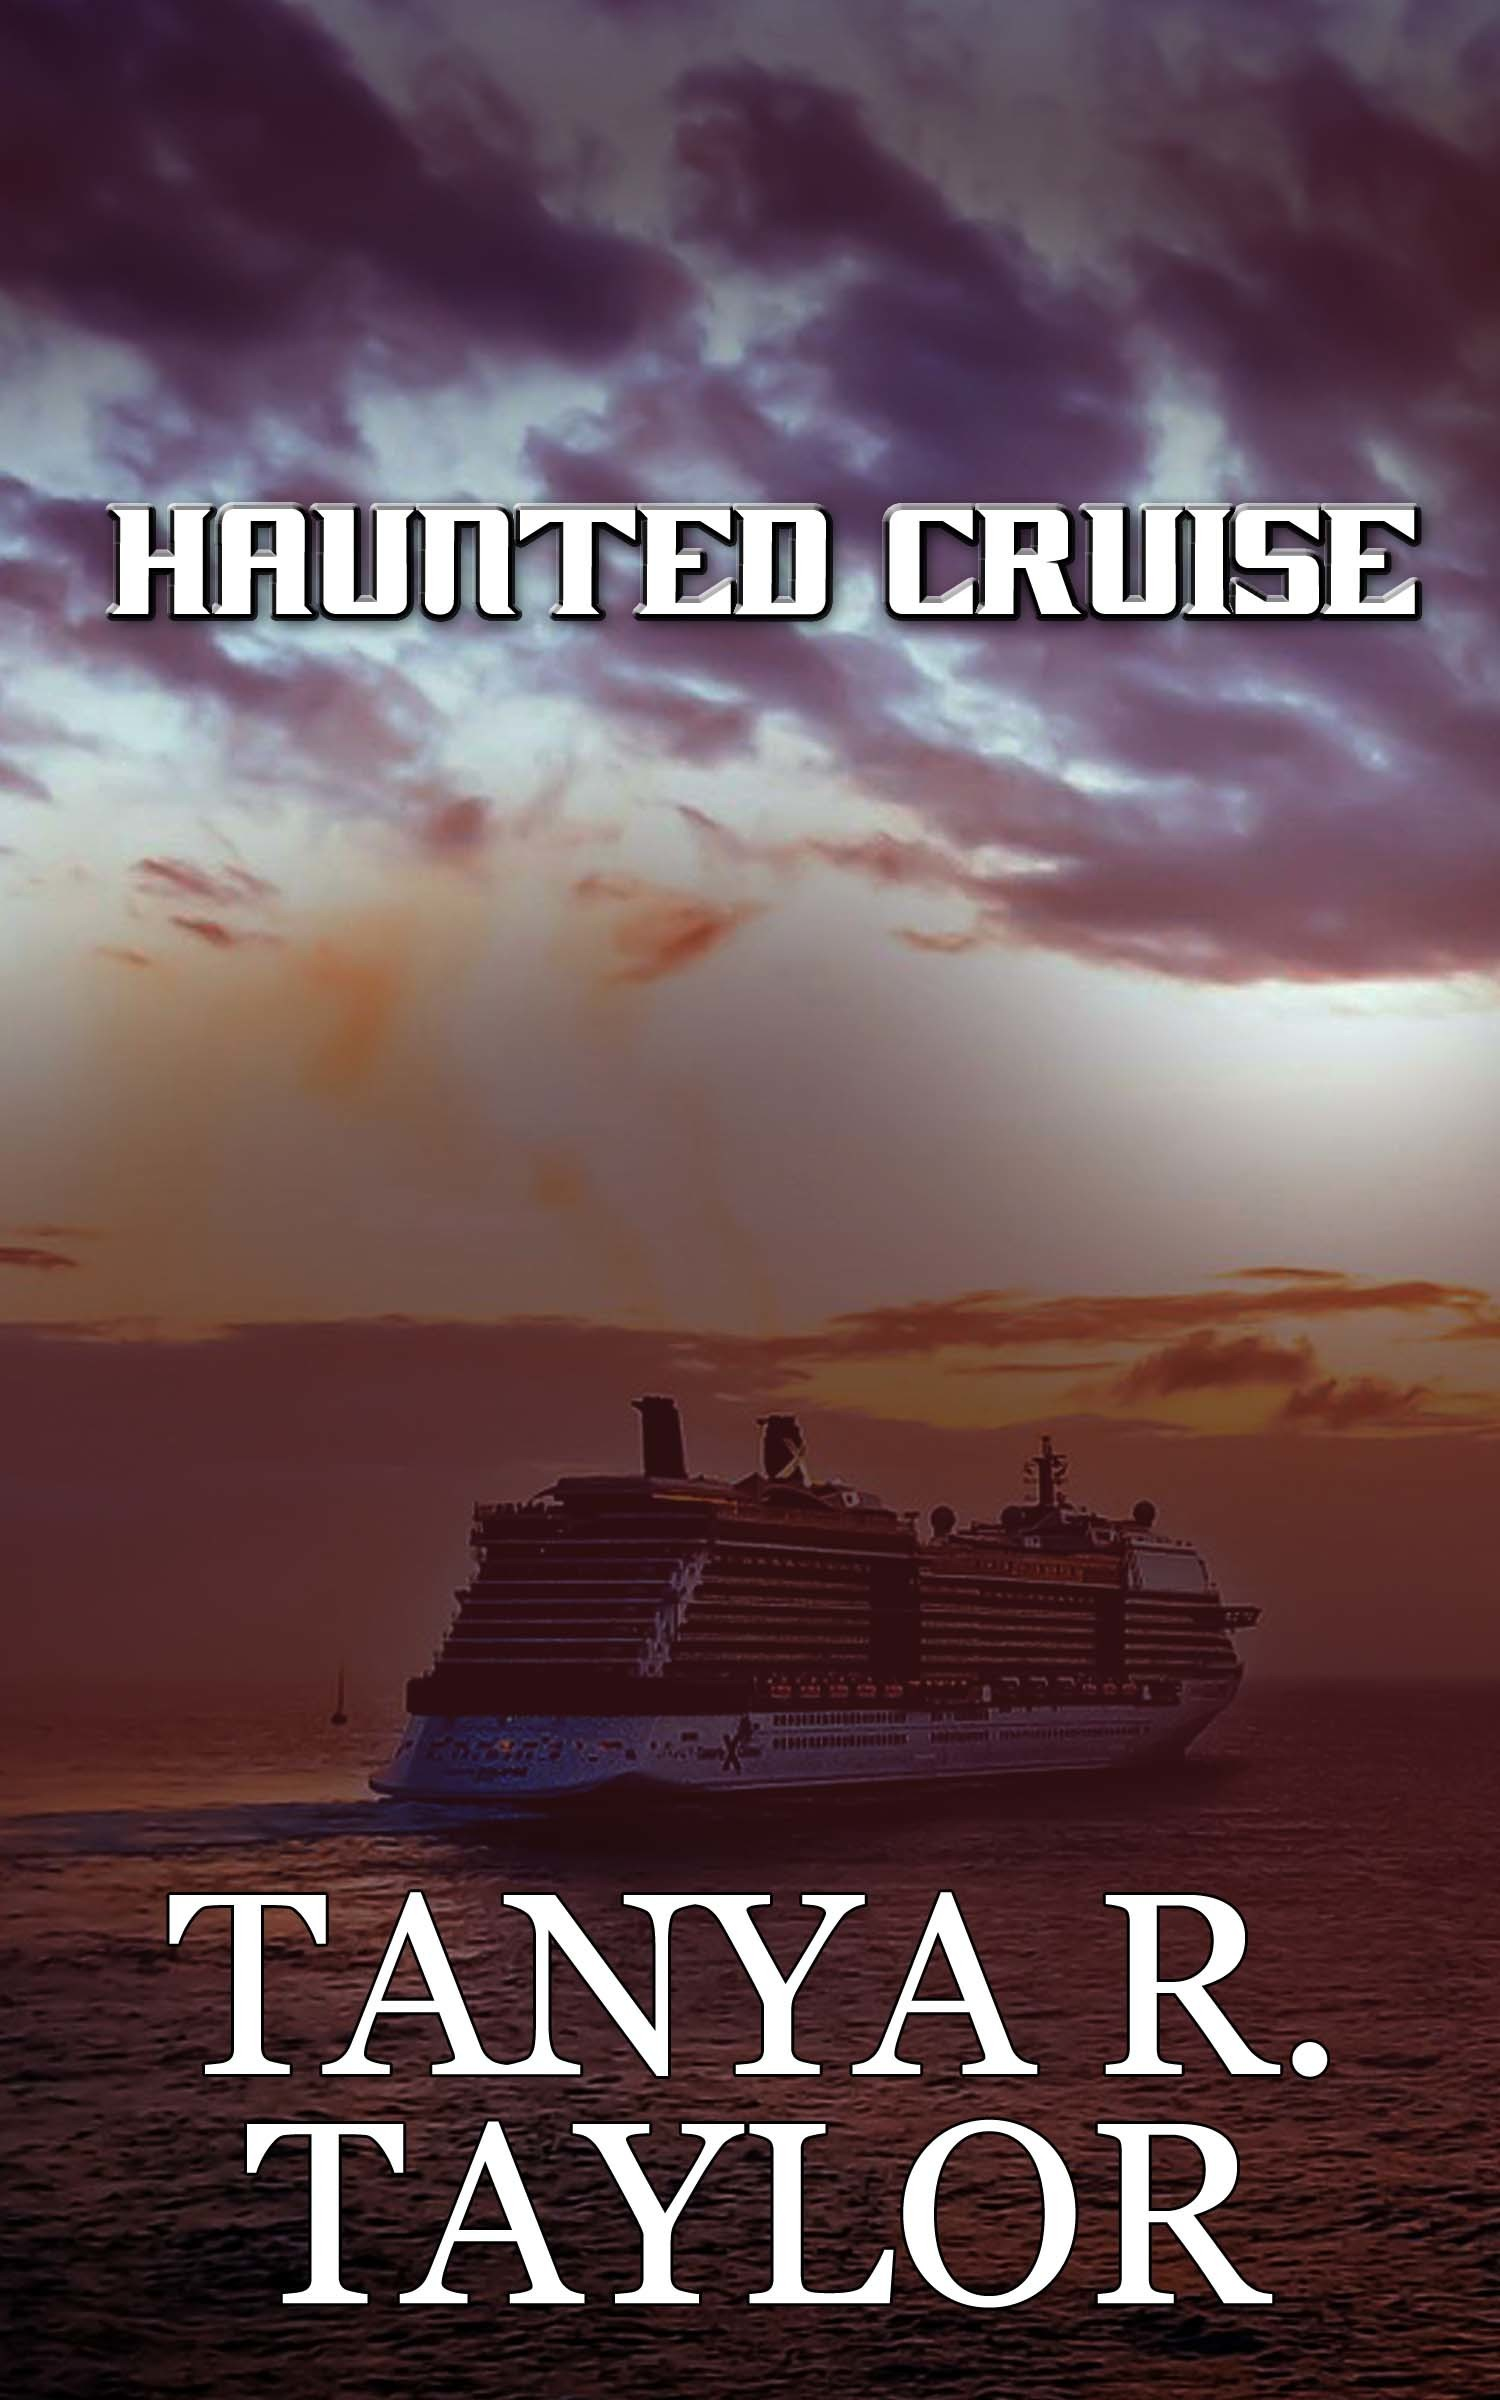 Haunted Cruise Tanya R. Taylor